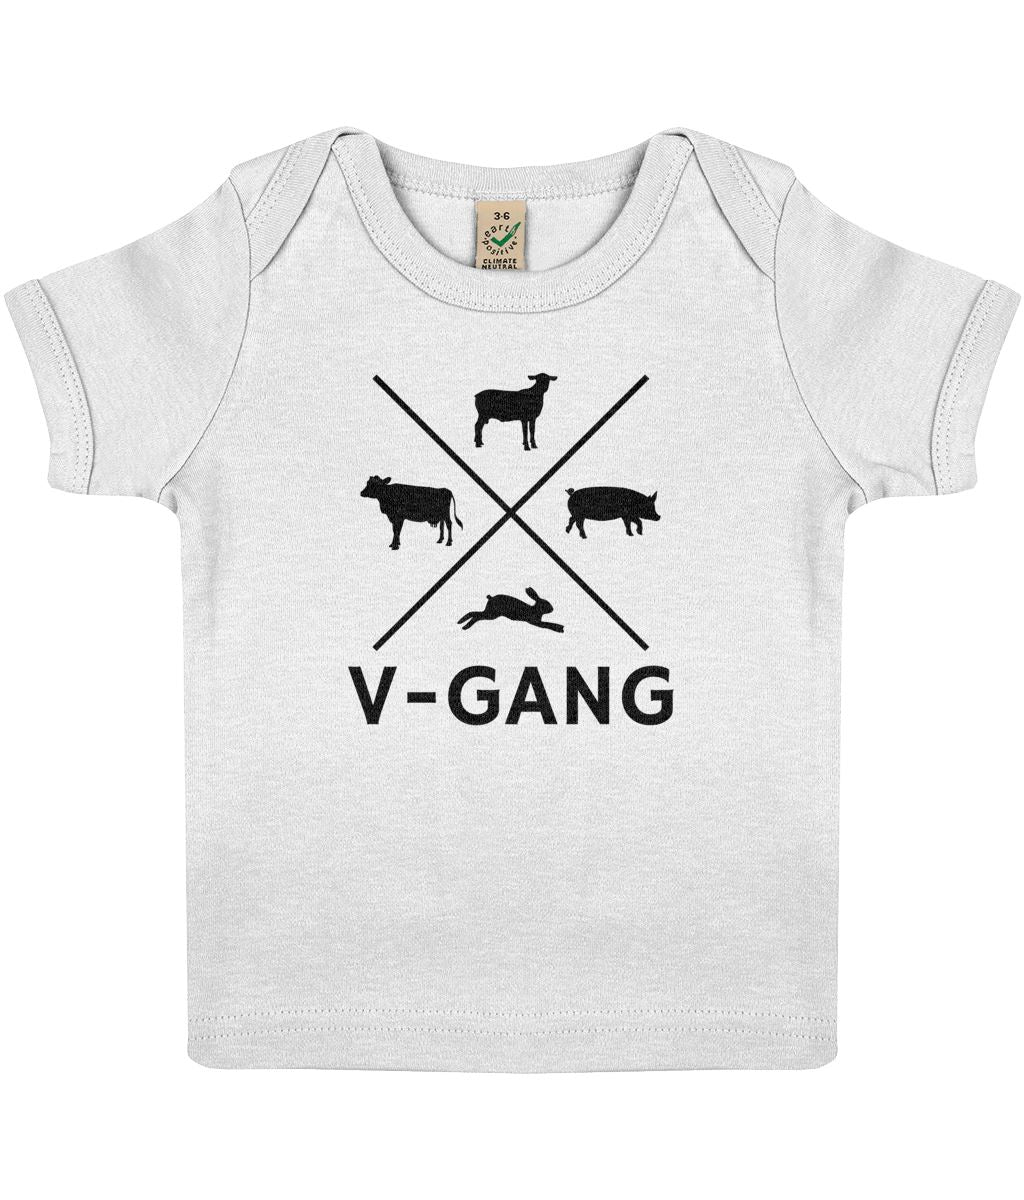 """V-Gang"" Baby Lap Vegan T-Shirt Clothing Vegan Original 3-6 months White"